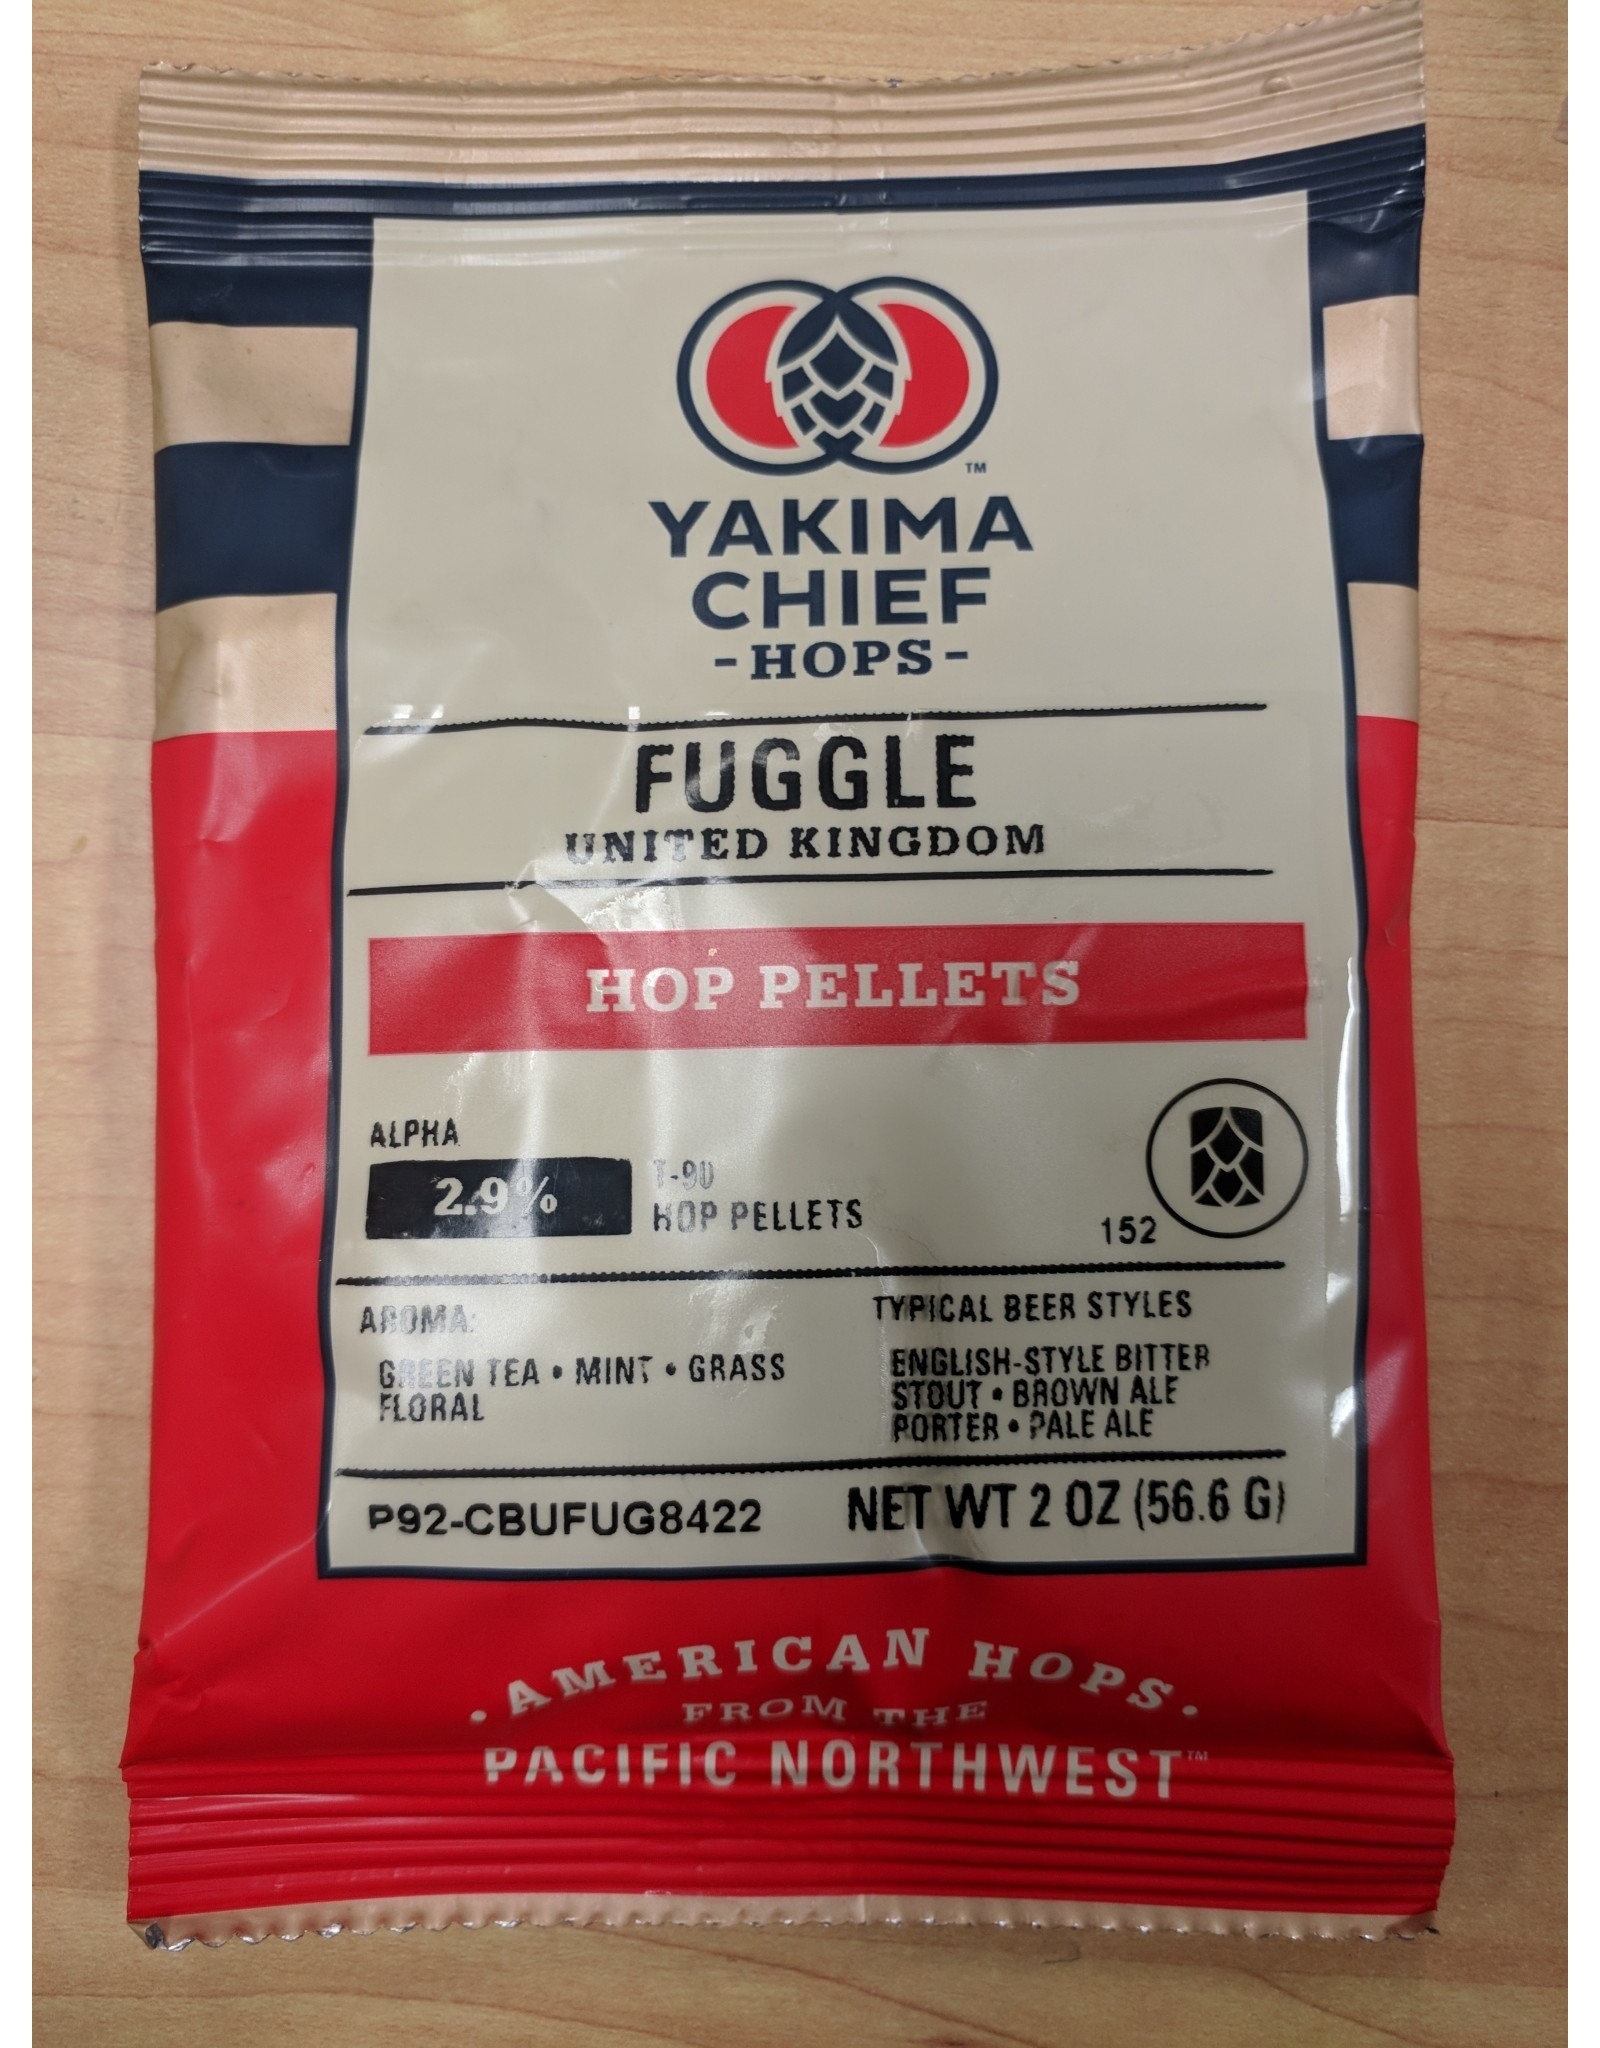 Fuggle (UK) Pellet Hops 2oz